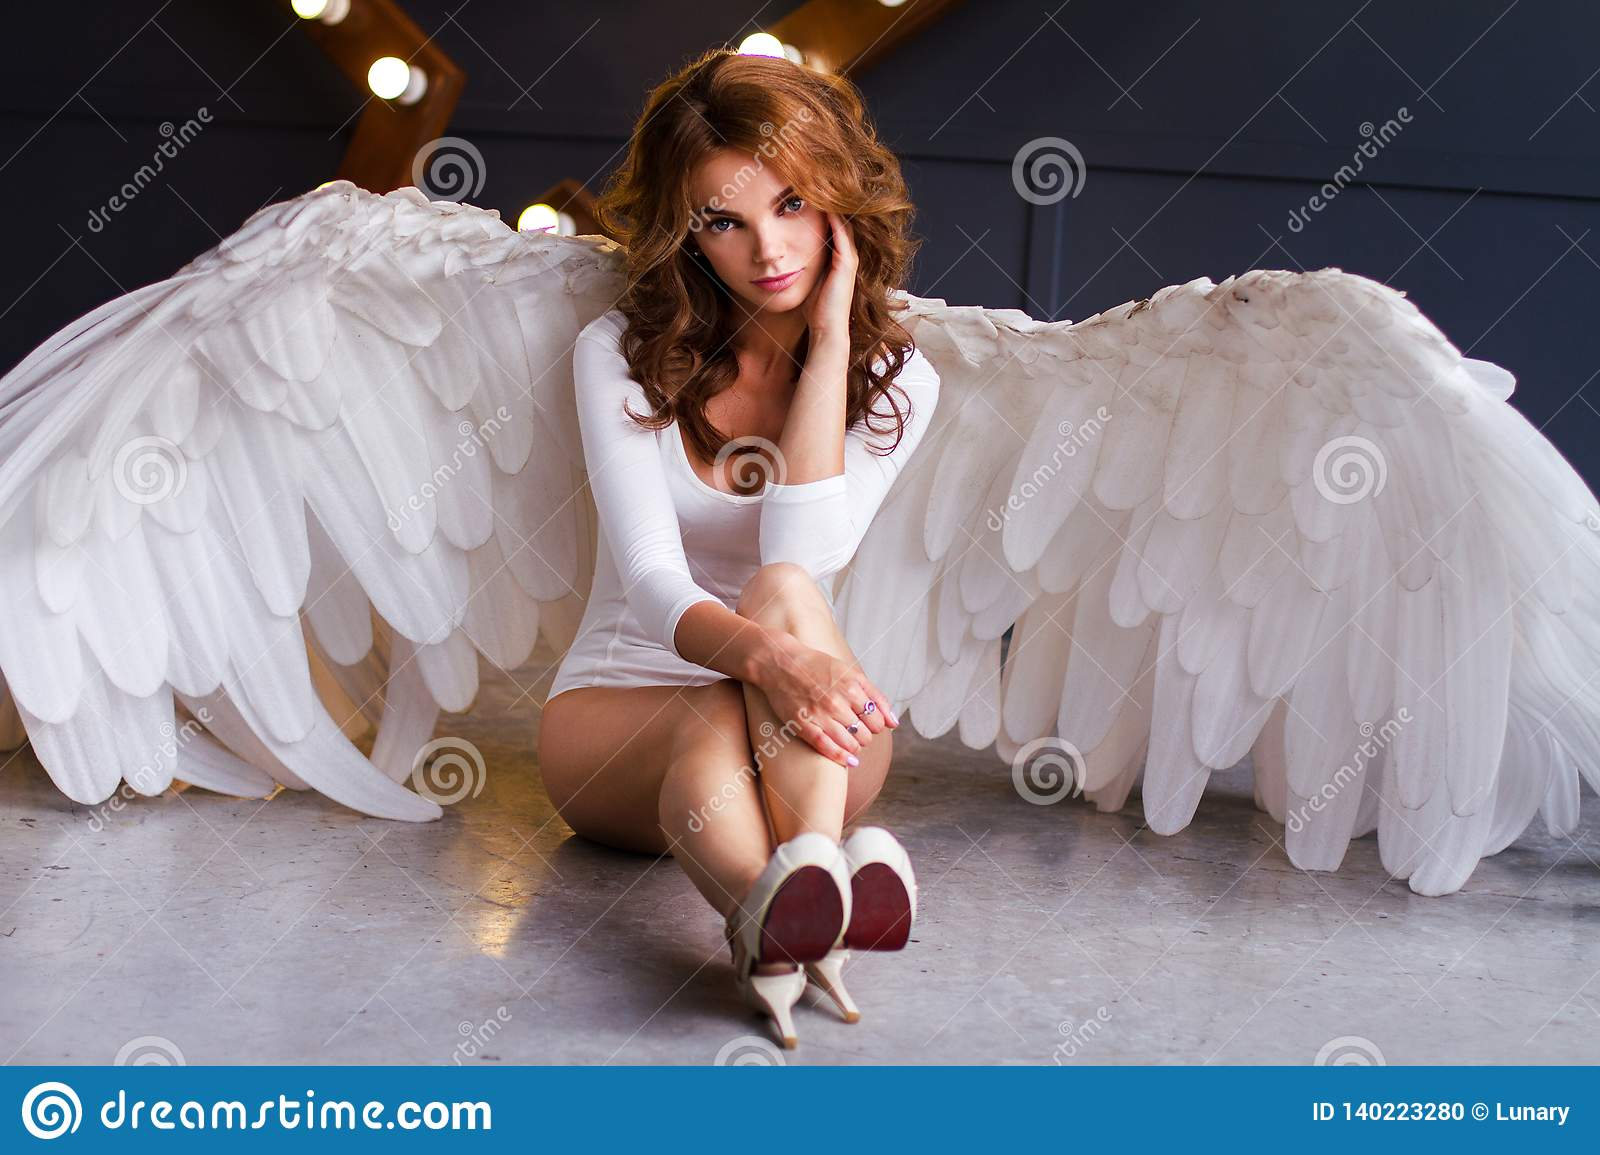 Young woman in white bodysuit with angel wings